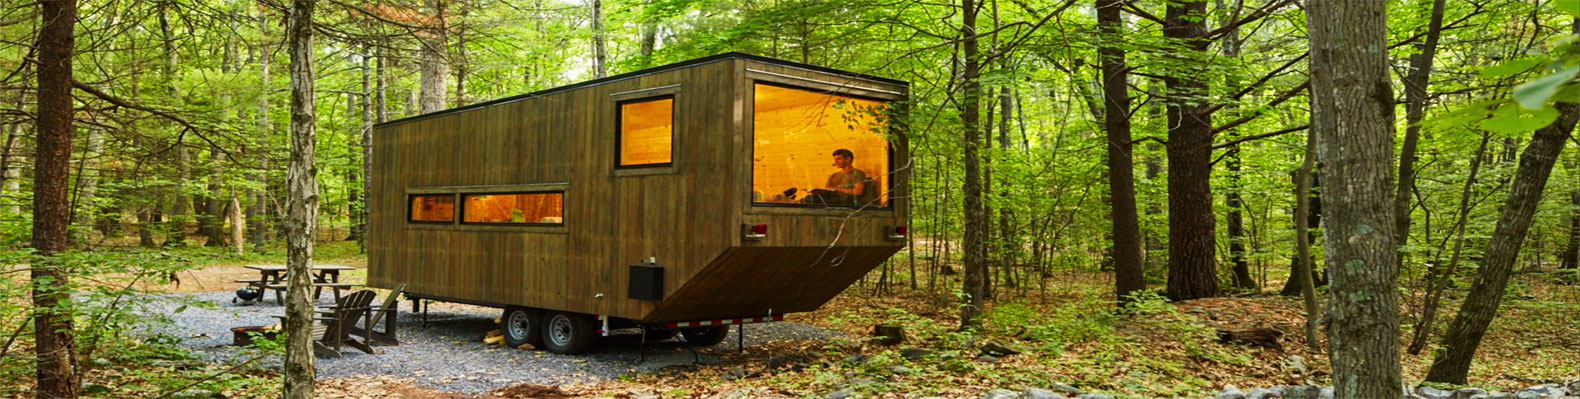 Harvard student startup lets you test-drive tiny house living for just $99 a night